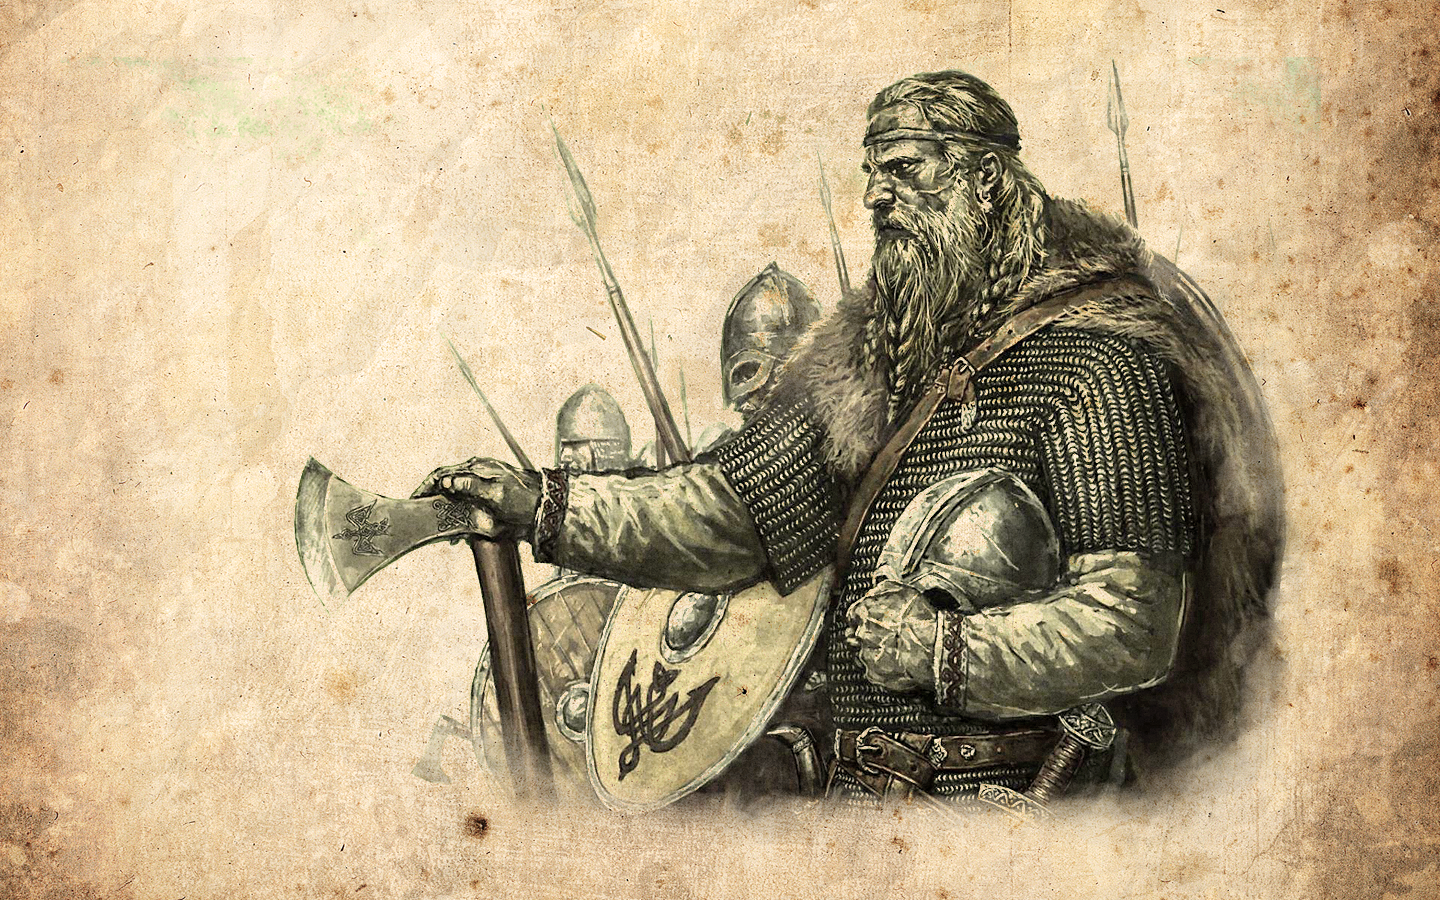 PC, Laptop Vikings Wallpapers, BsnSCB Graphics